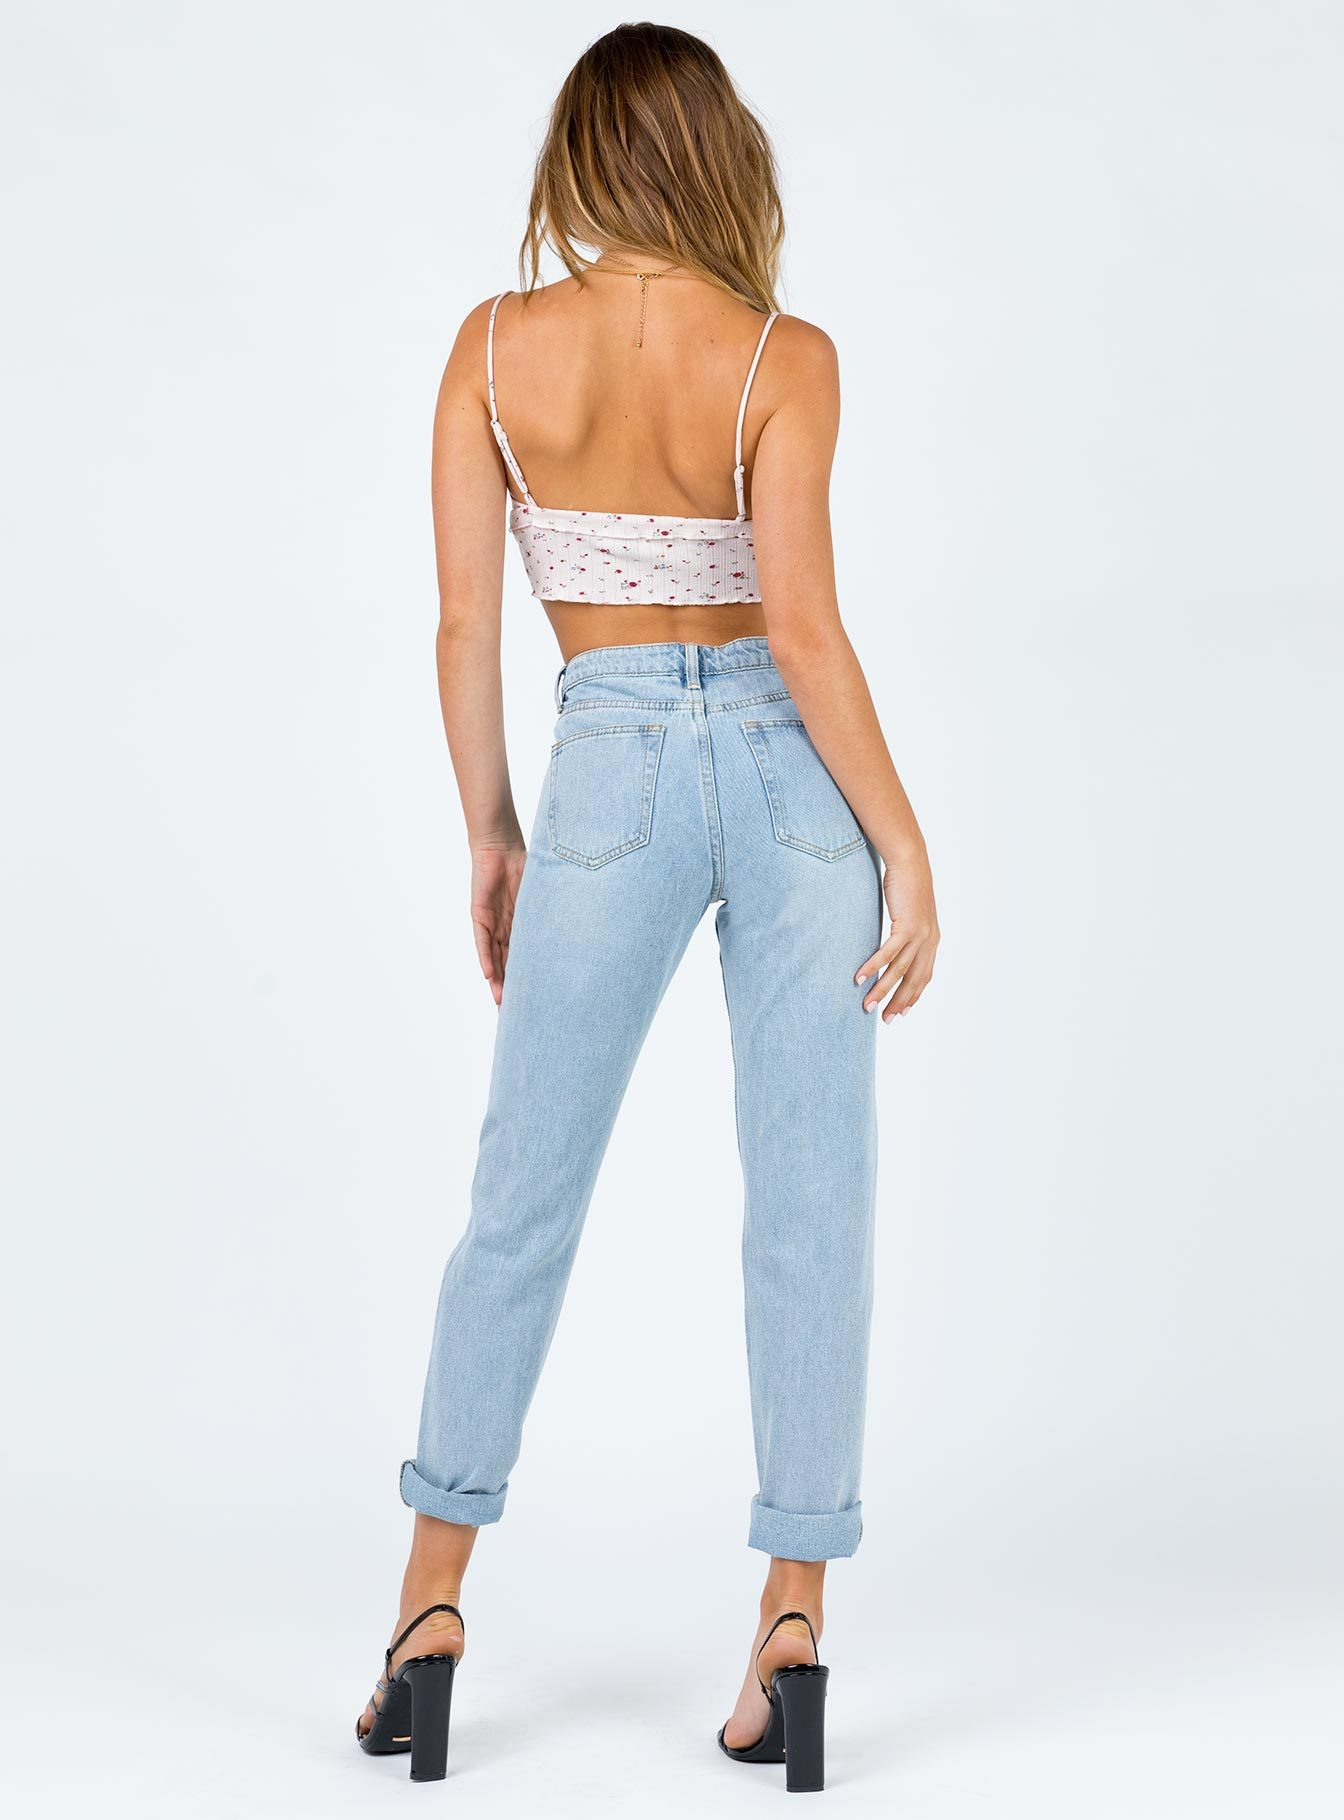 MOM JEANS (Side B)